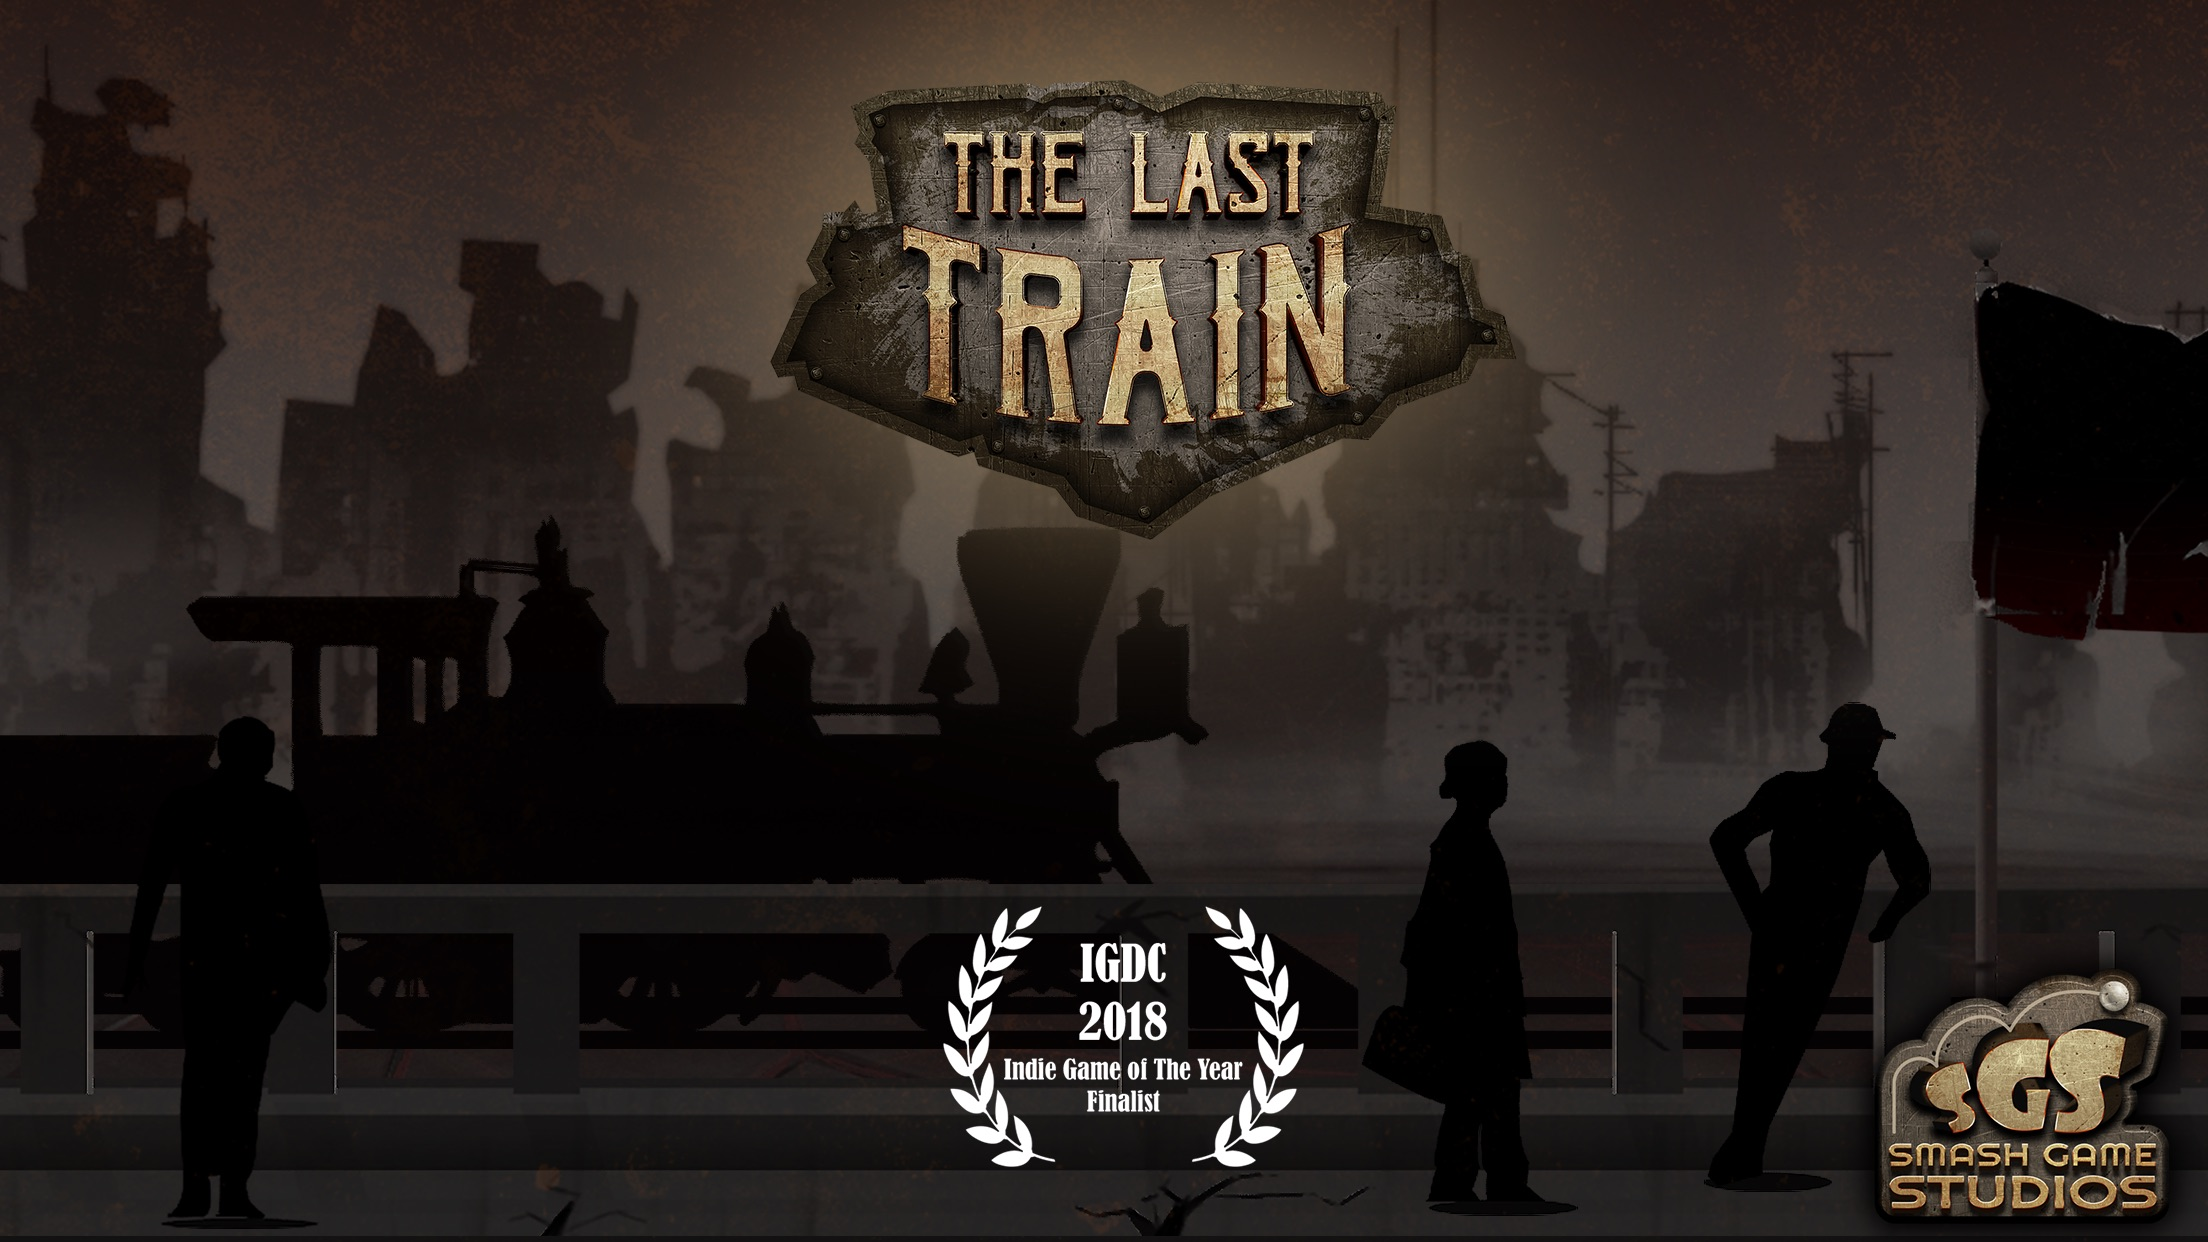 Explore an Alternate World War II History in The Last Train